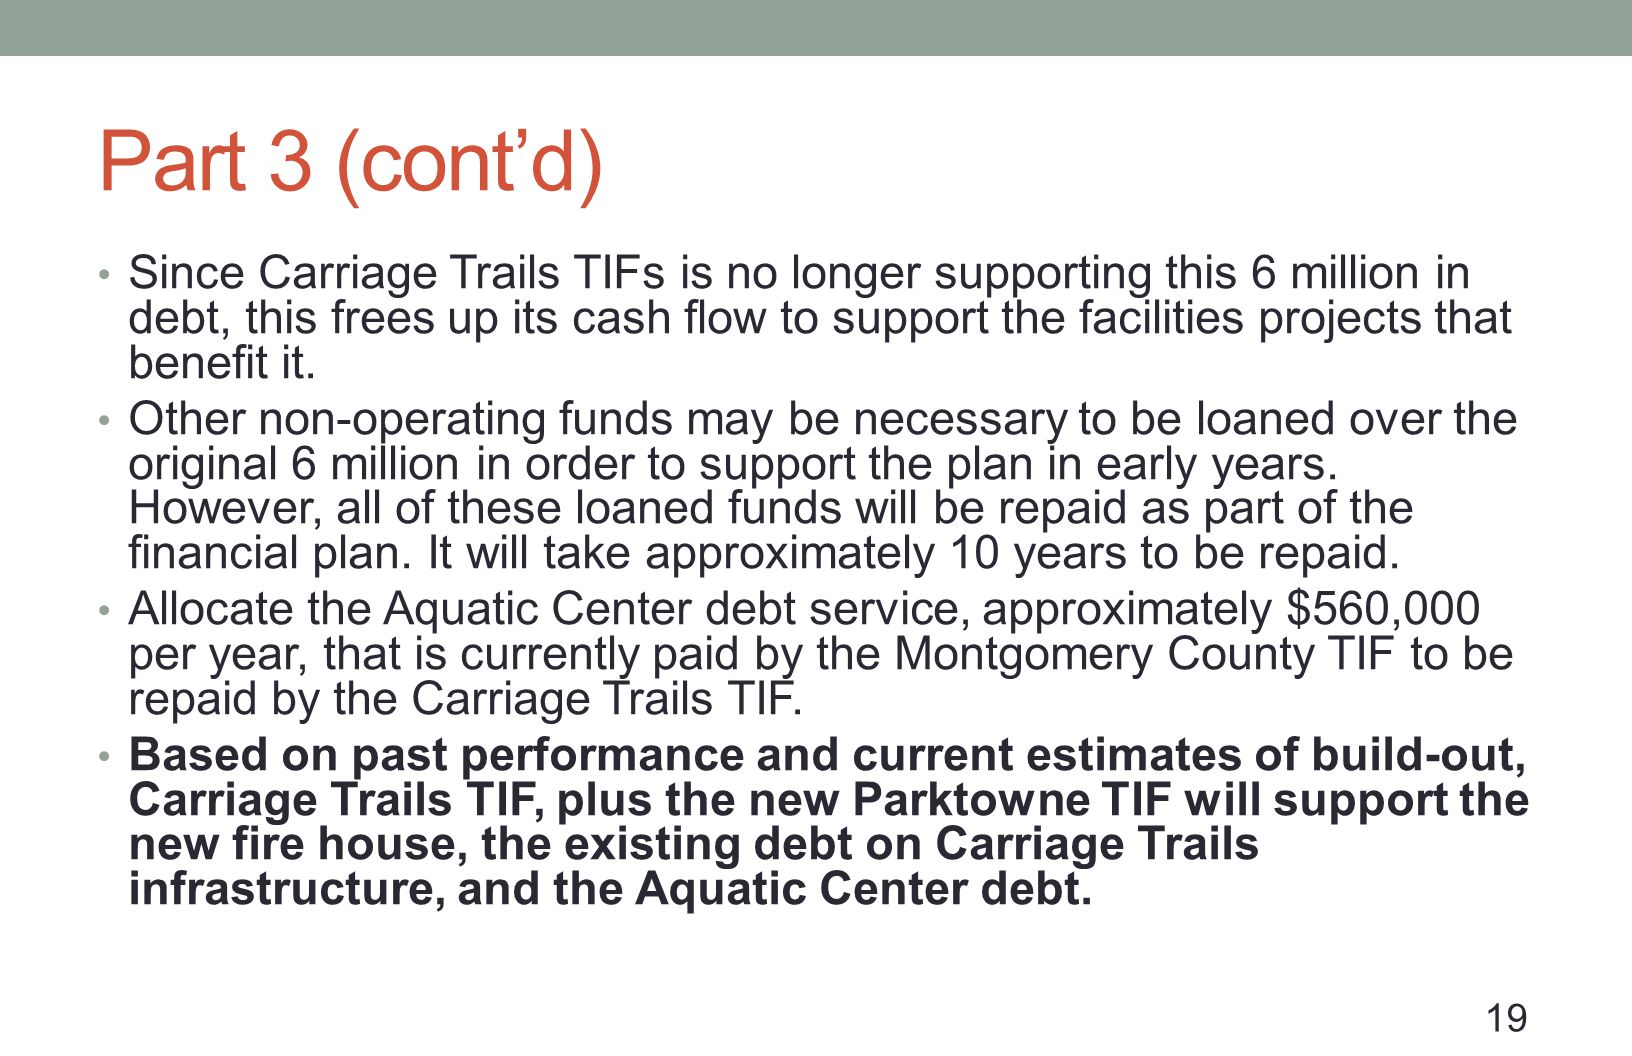 Part 3 (contd) Since Carriage Trails TIFs is no longer supporting this 6 million in debt, this frees up its cash flow to support the facilities projects that benefit it.